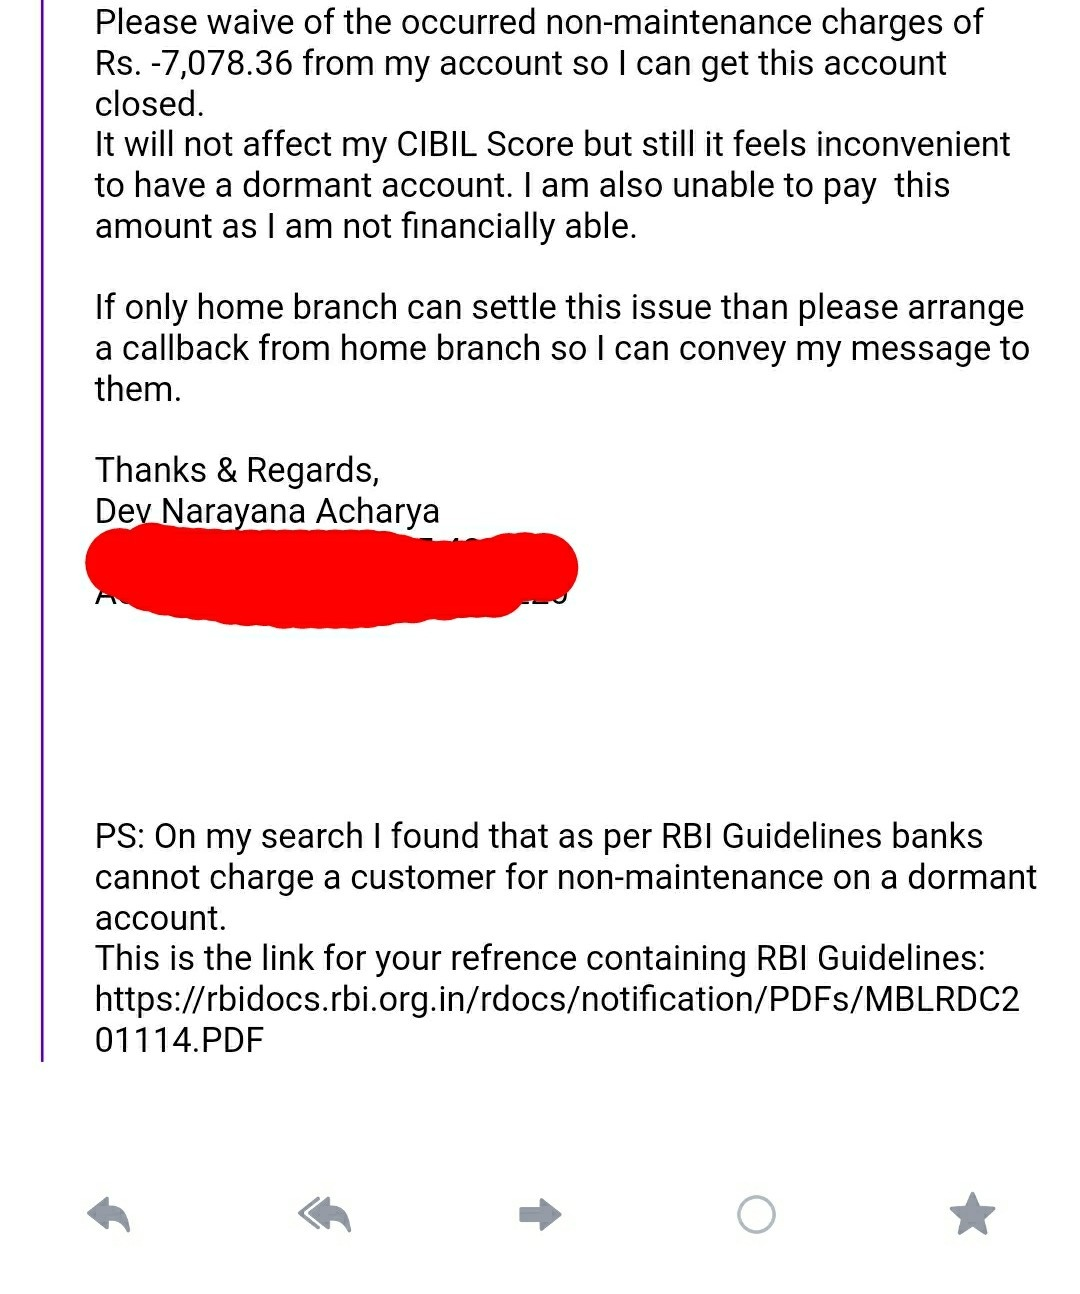 I did not maintain the minimum balance in HDFC and now my